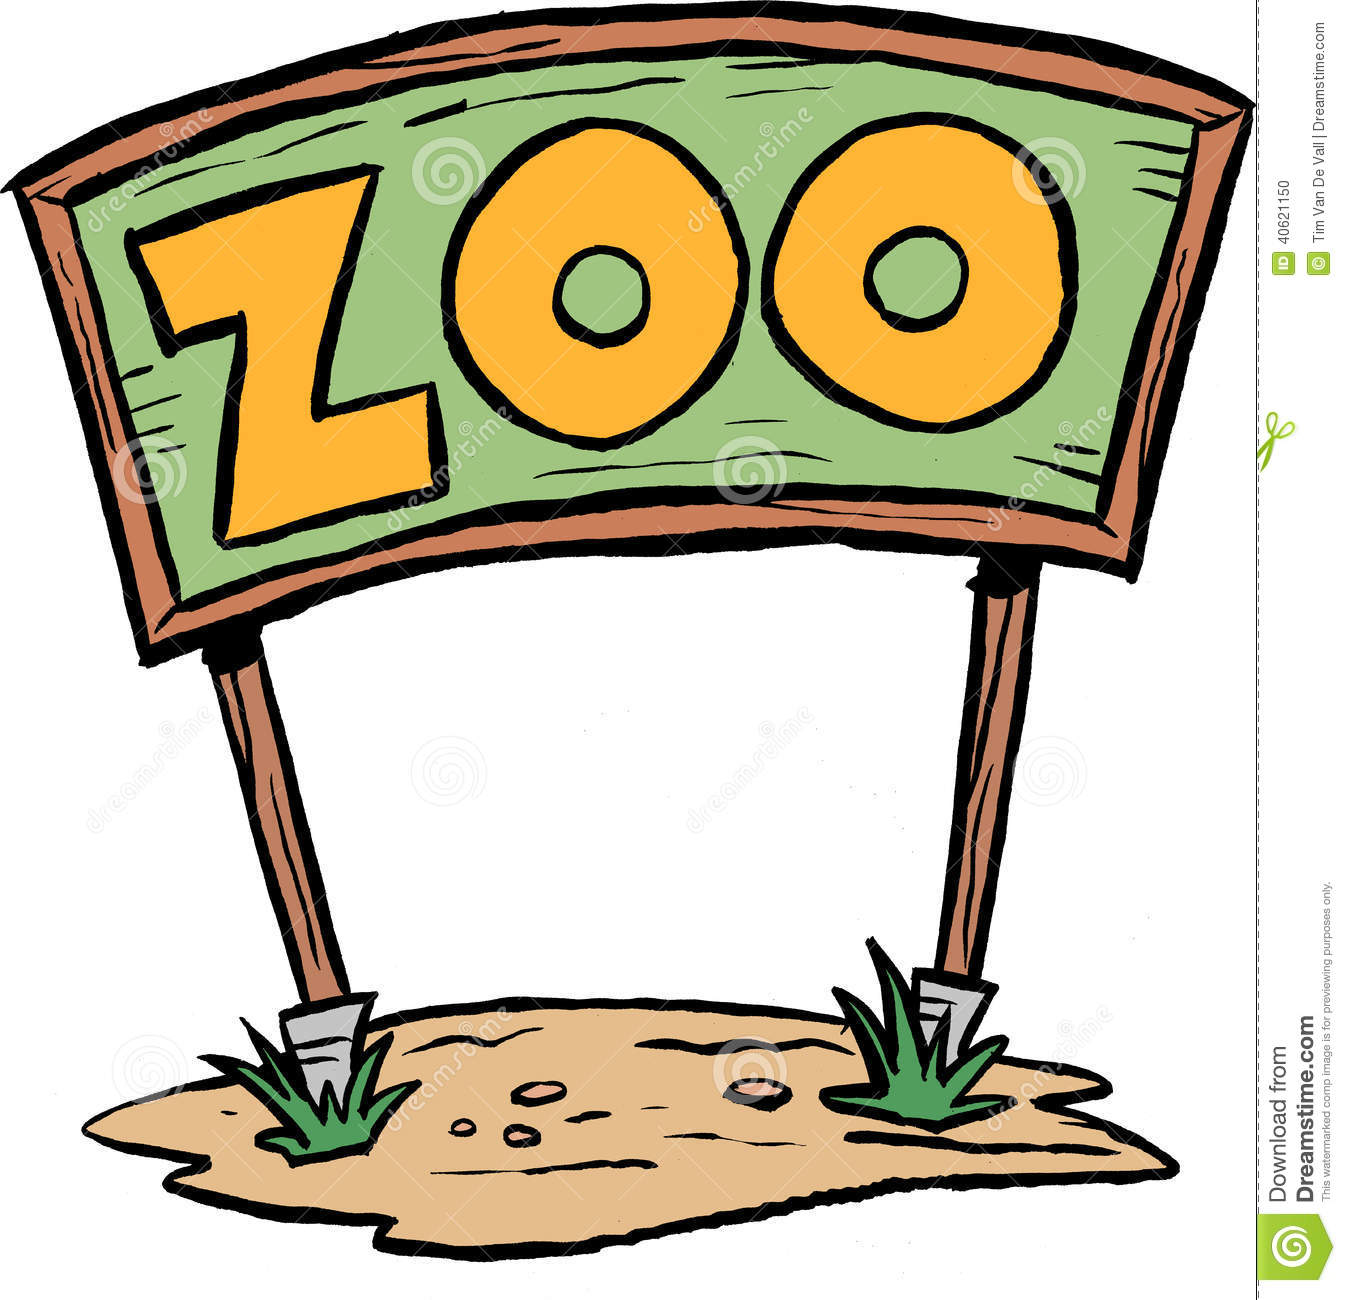 large zoo sign or billboard. Cartoon clip art image.